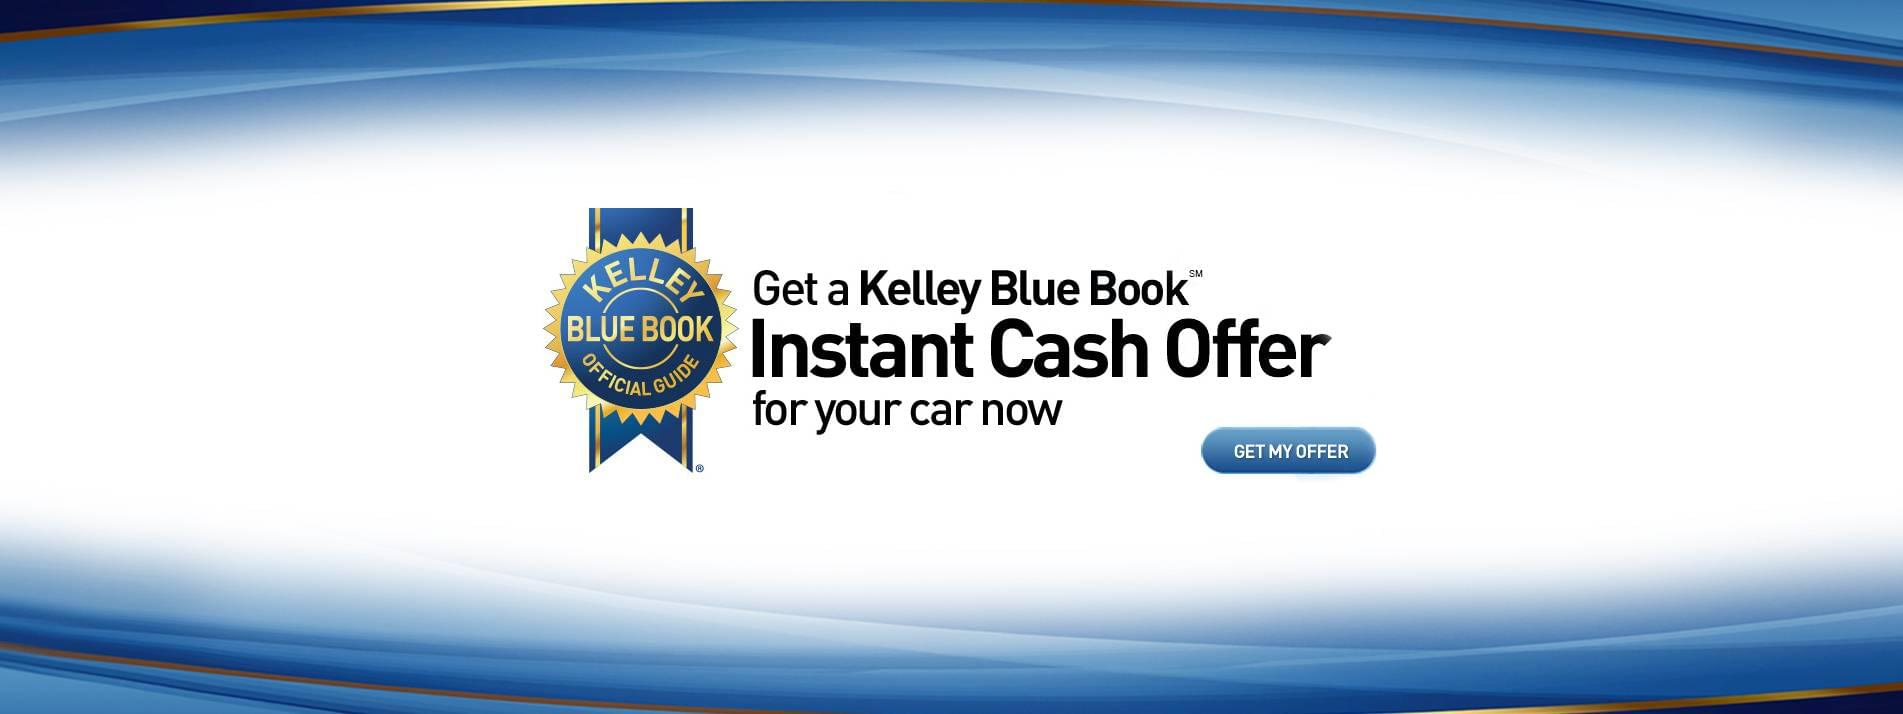 Kelley blue book banner